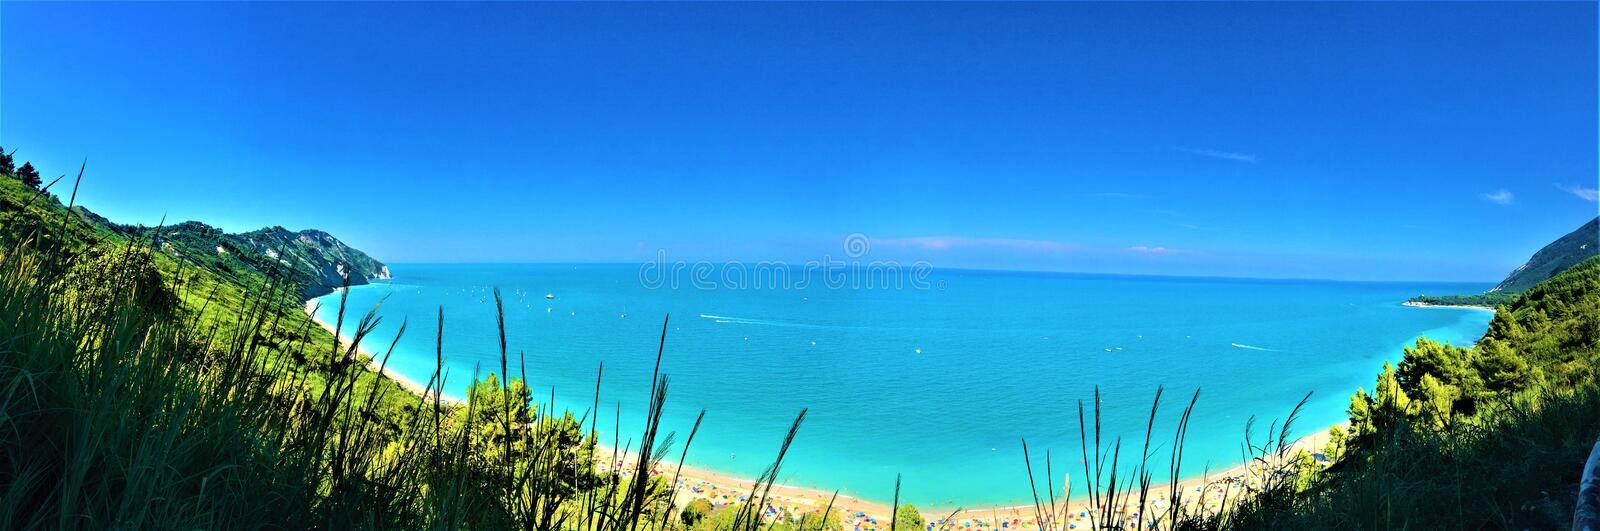 Mount Conero, nature reserve, wild trip. Mount Conesro, Marche, summer vacation, sunny day, blue sky, sane environment, trees, grass, good vibes, limpid water stock photography